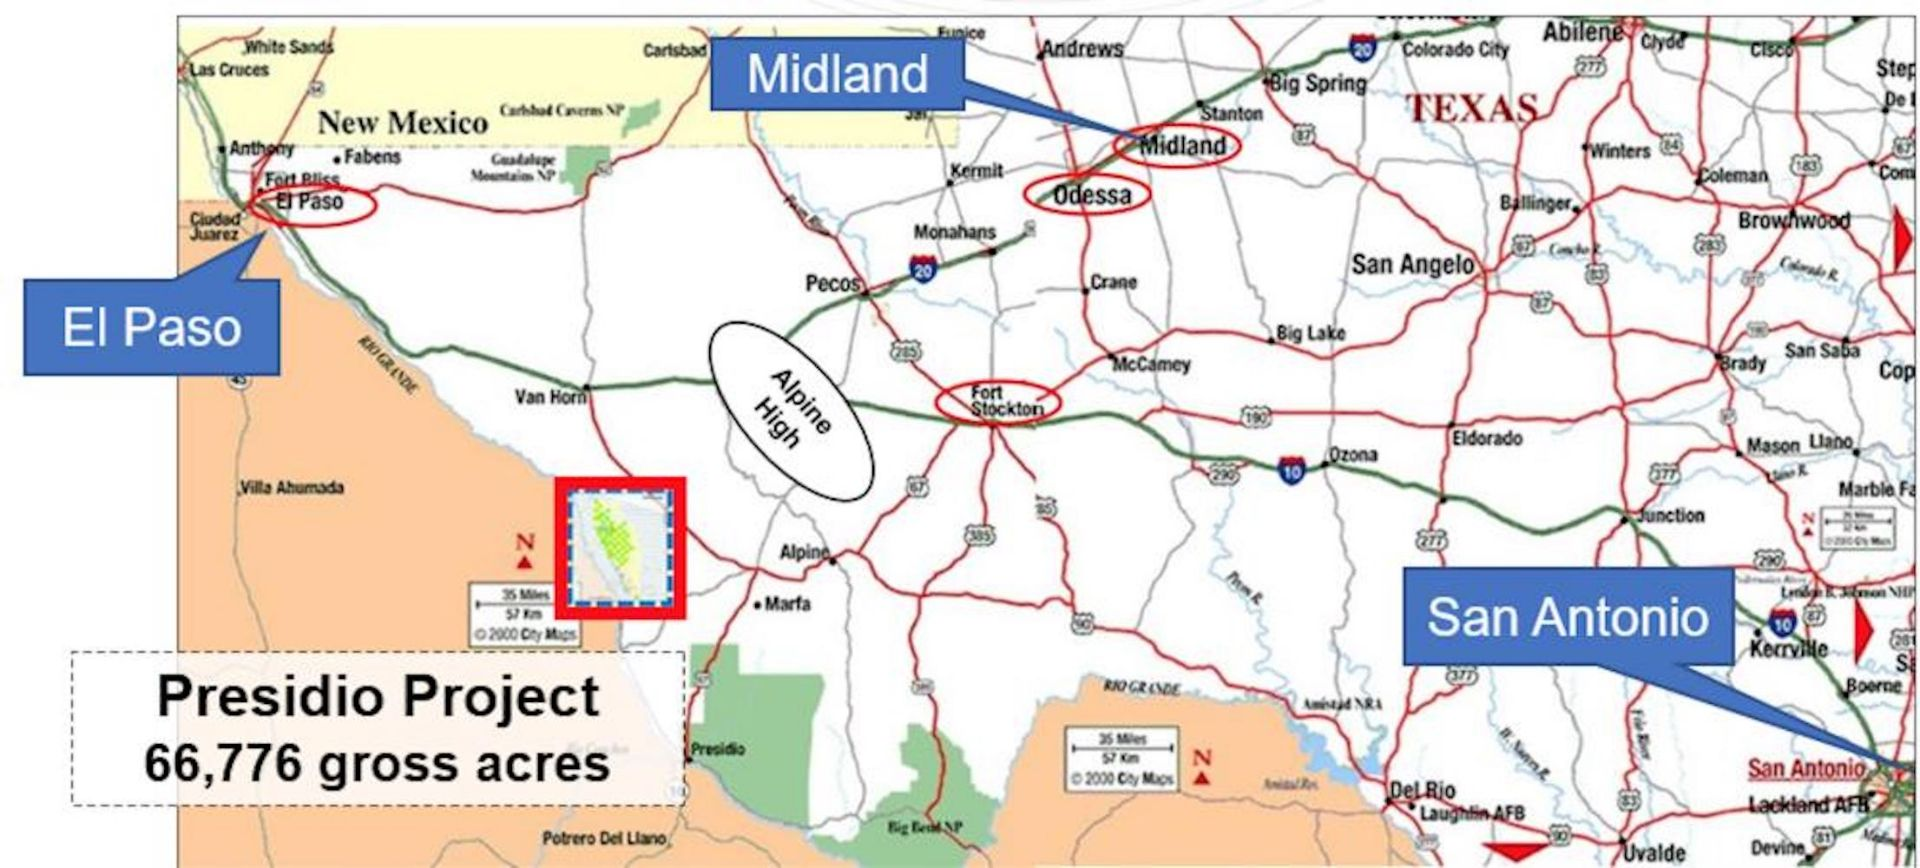 Invest Here: 40 Acres in Texas in Oil Country! - Image 4 of 6